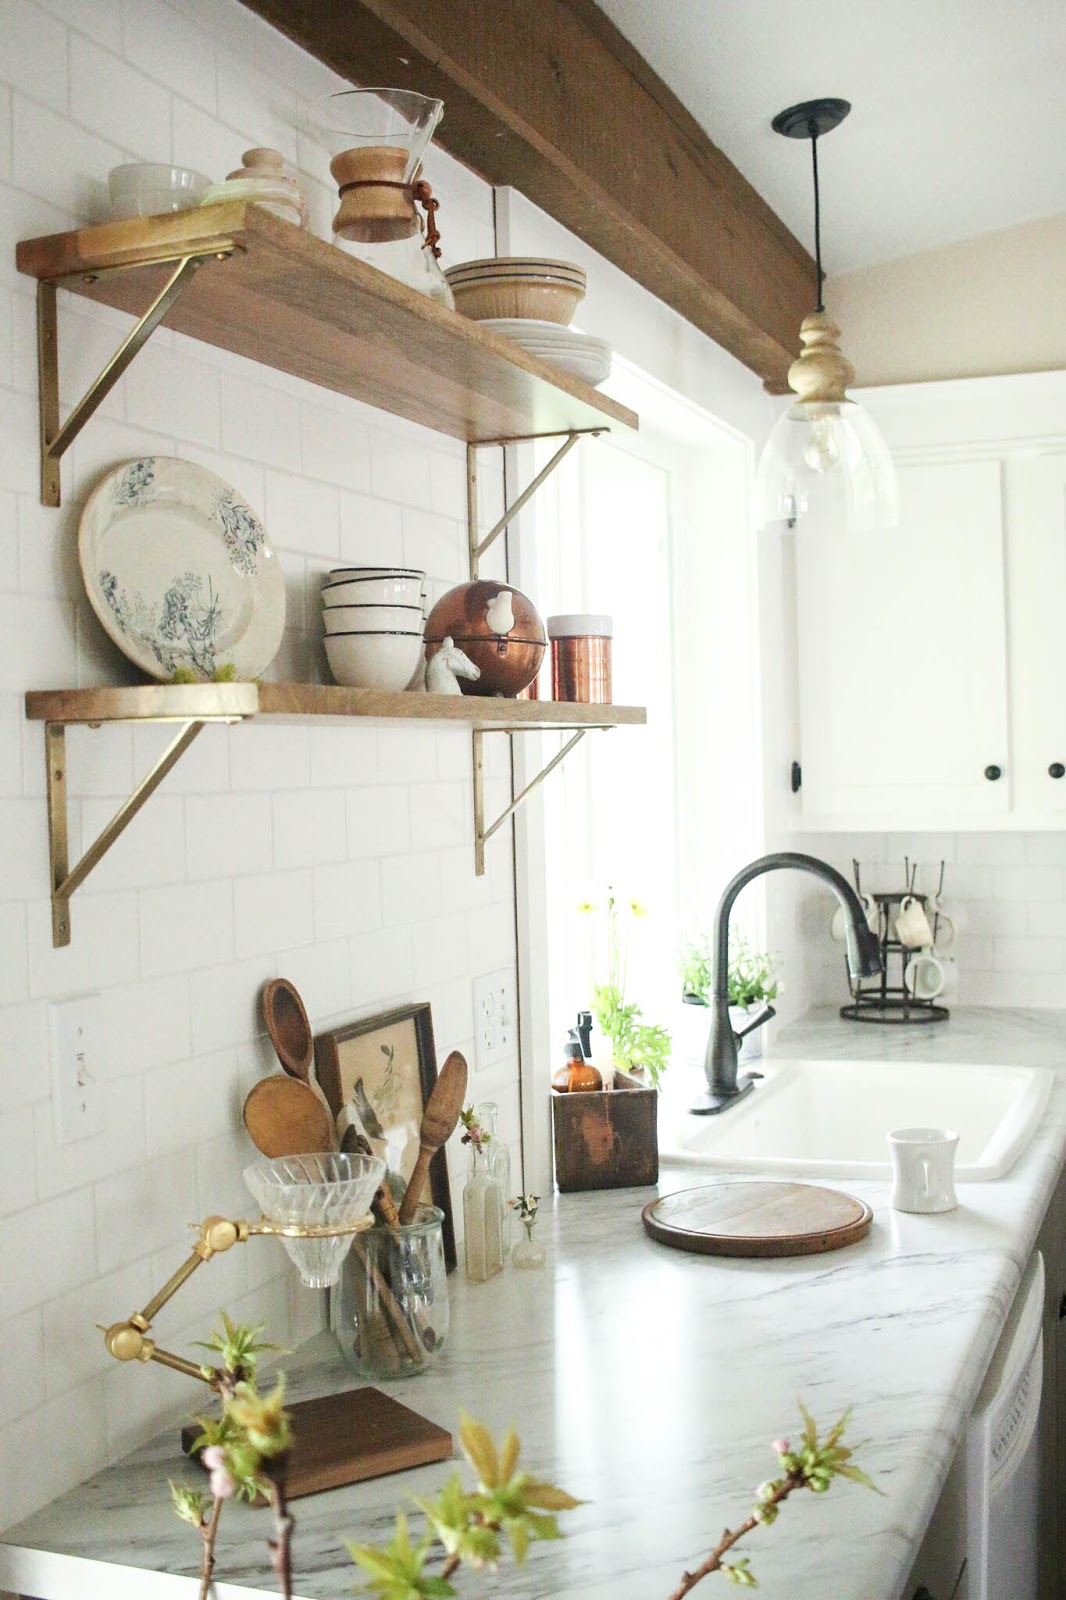 Vintage Whites Blog: Kitchen Remodel Reveal + A $5,000